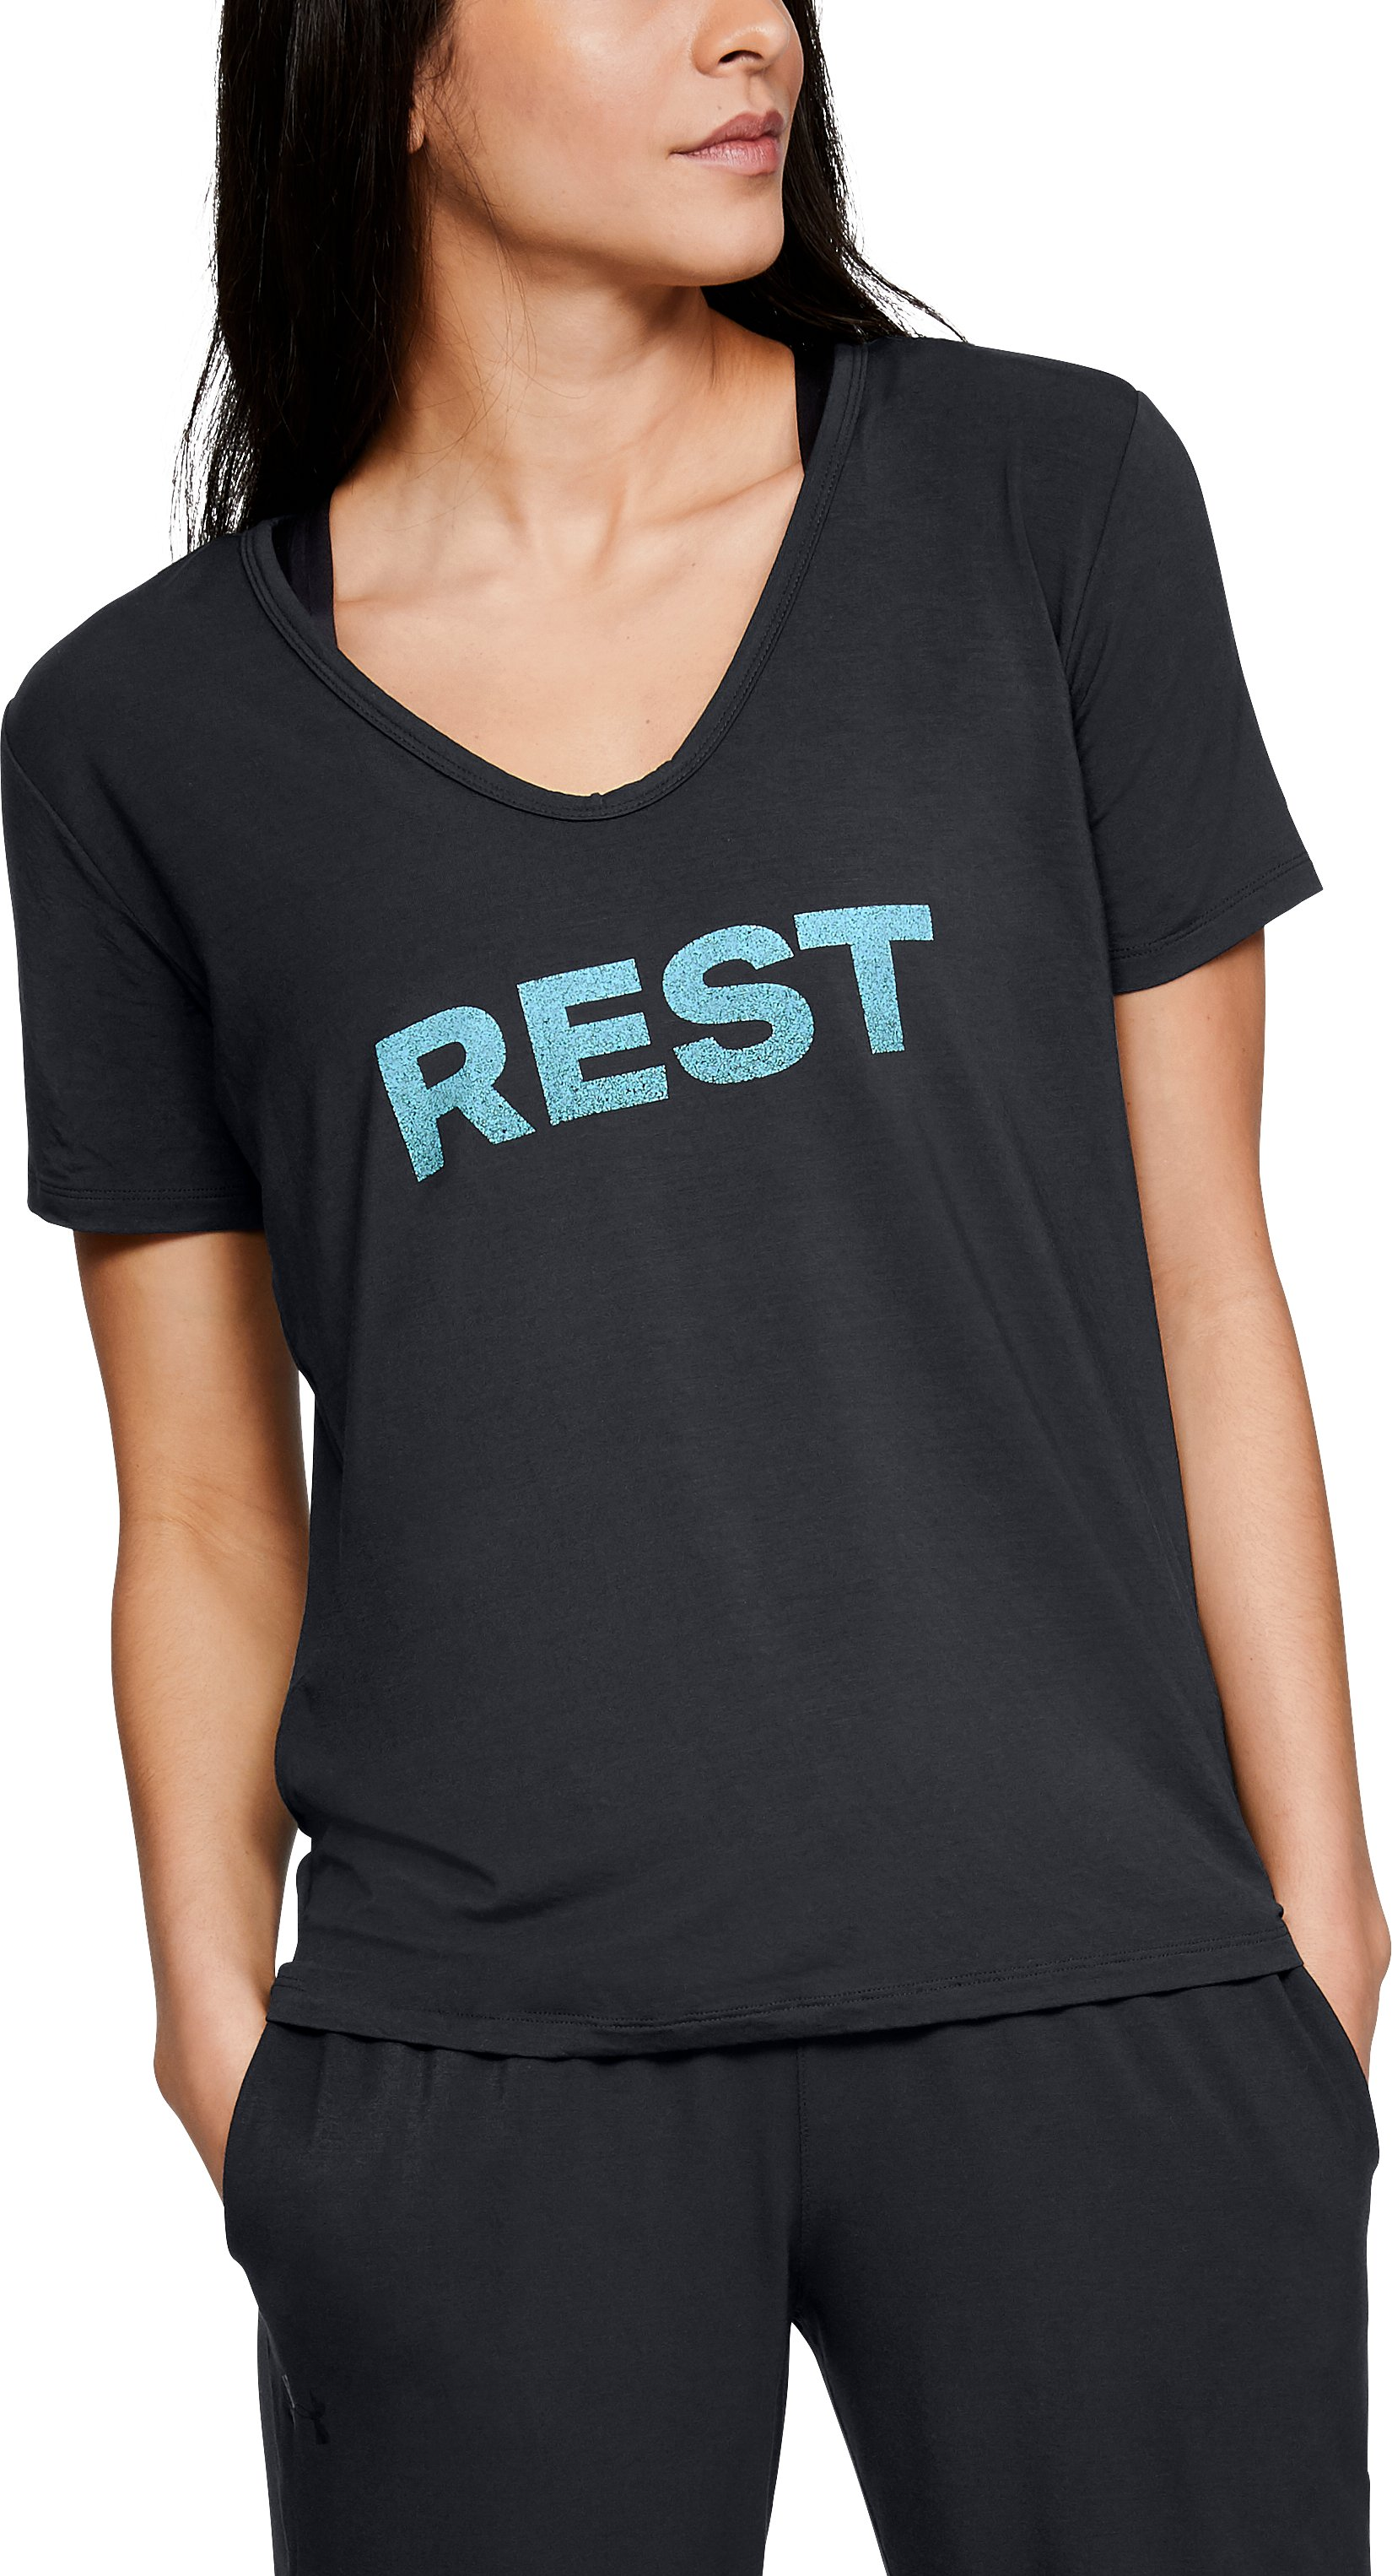 Women's Athlete Recovery Ultra Comfort Sleepwear REST Graphic T-Shirt, Black